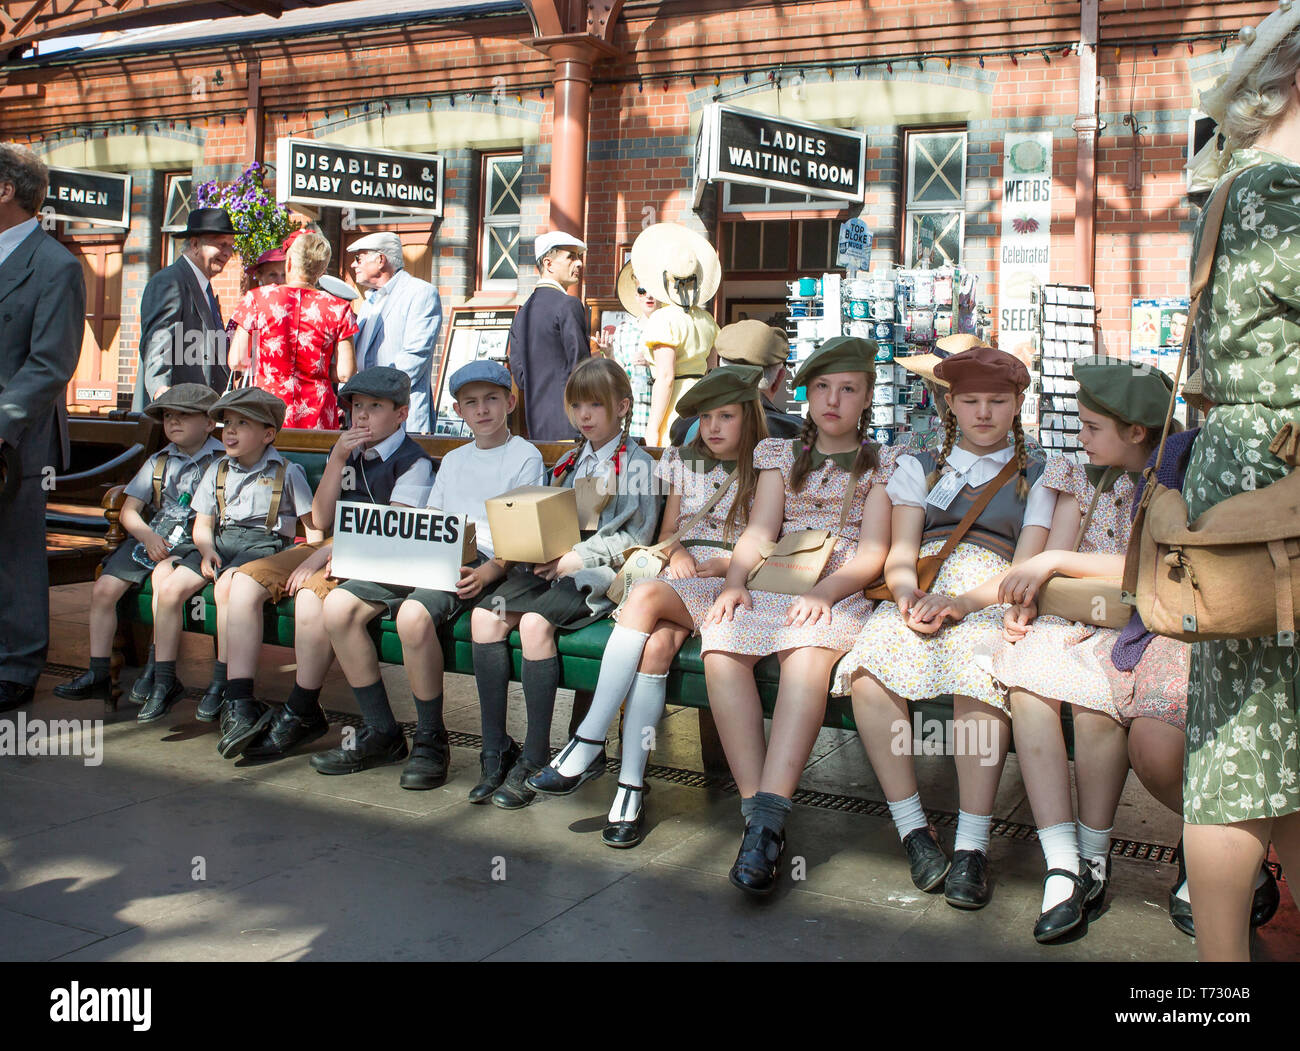 Severn Valley Railway, 1940's wartime event, Kidderminster vintage railway station. Boys & girls (evacuees) in 1940's dress sitting on bench waiting. - Stock Image